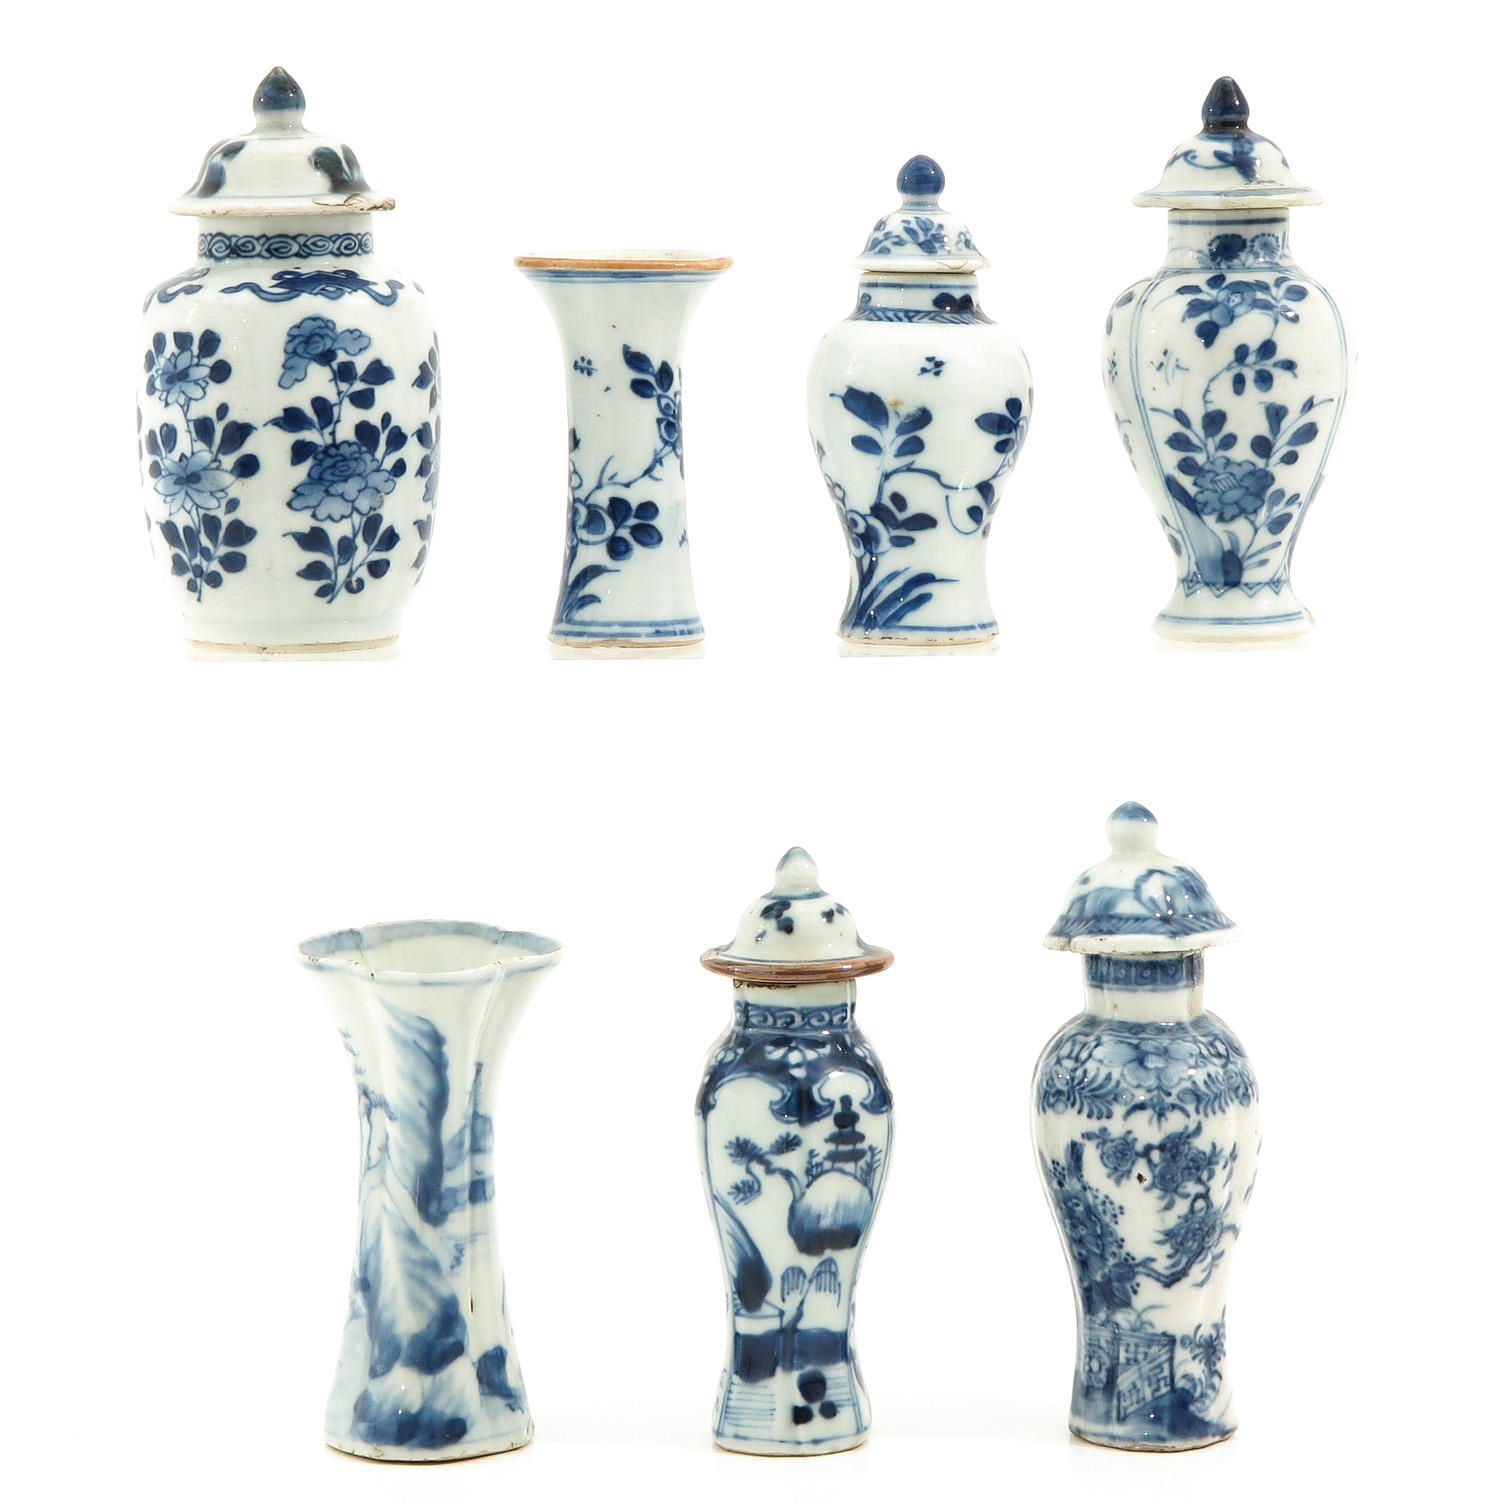 A Collection of 7 Miniature Vases - Image 2 of 9